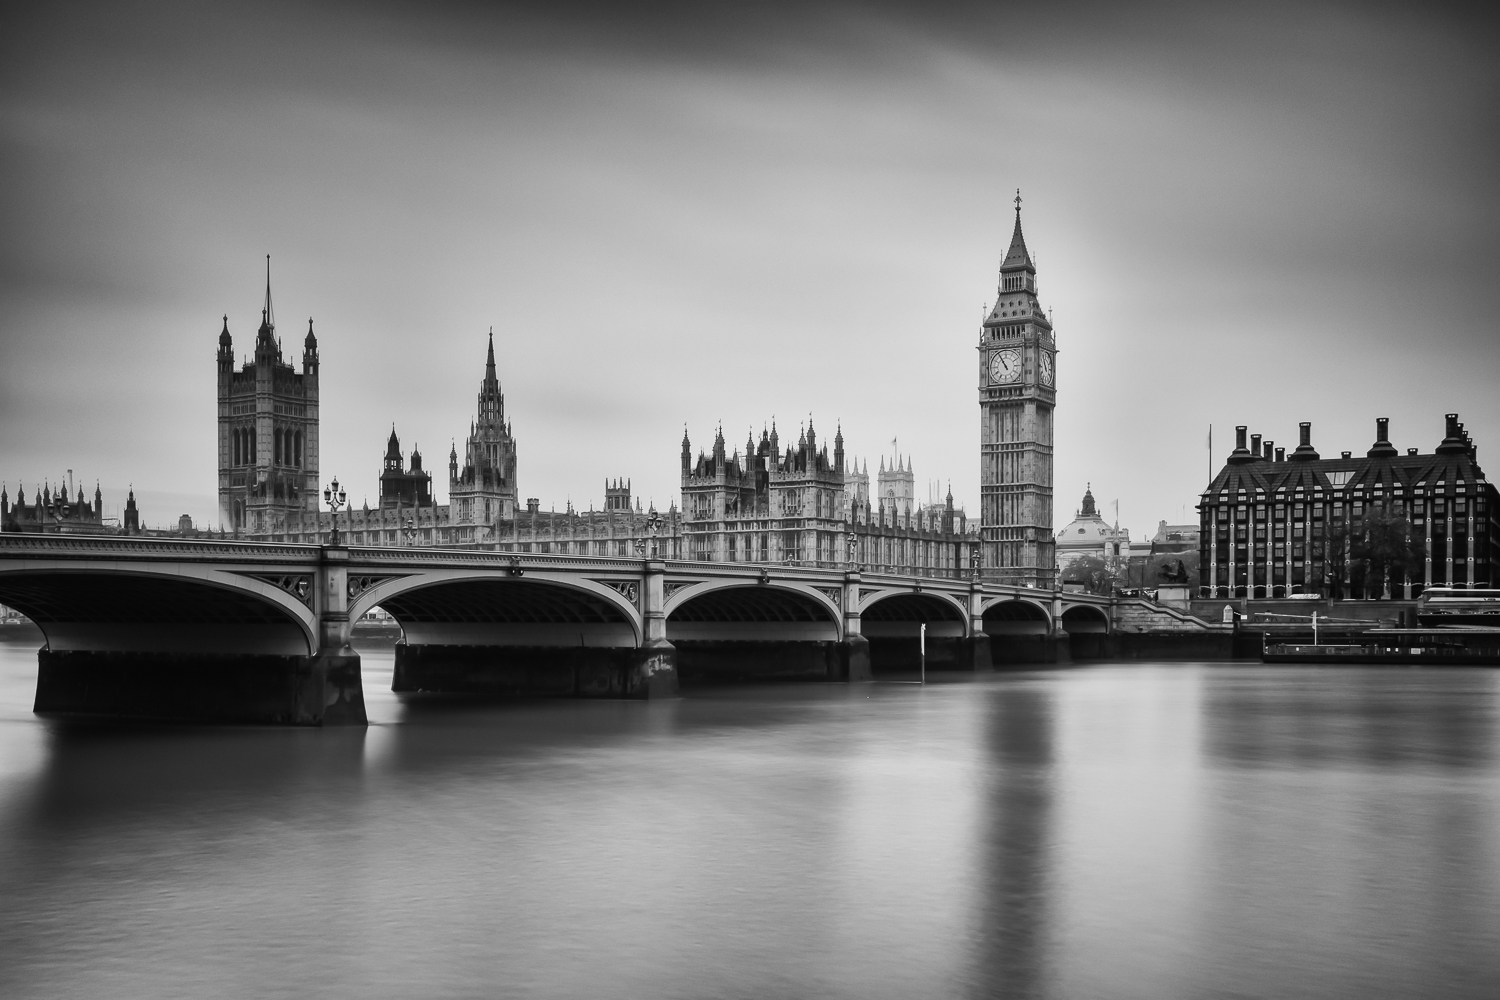 Big Ben - 58 seconds at f/11